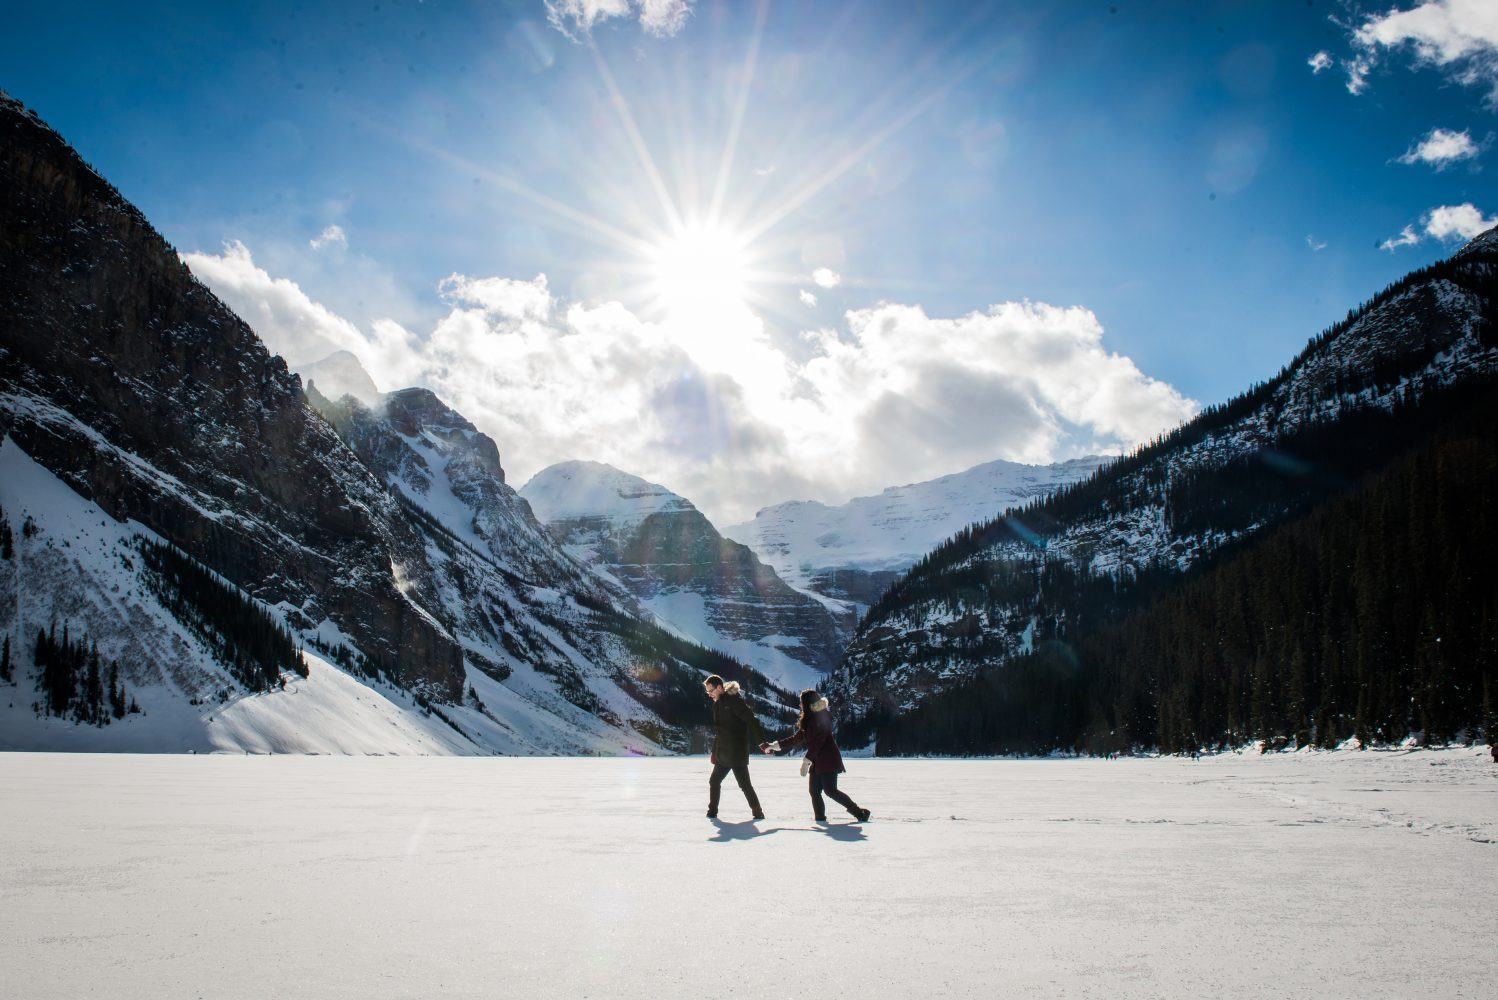 A beautiful mountain engagement session at the fairmont lake louise hotel. Snow covered and and sunny made for epic photos | 3Haus Photographics